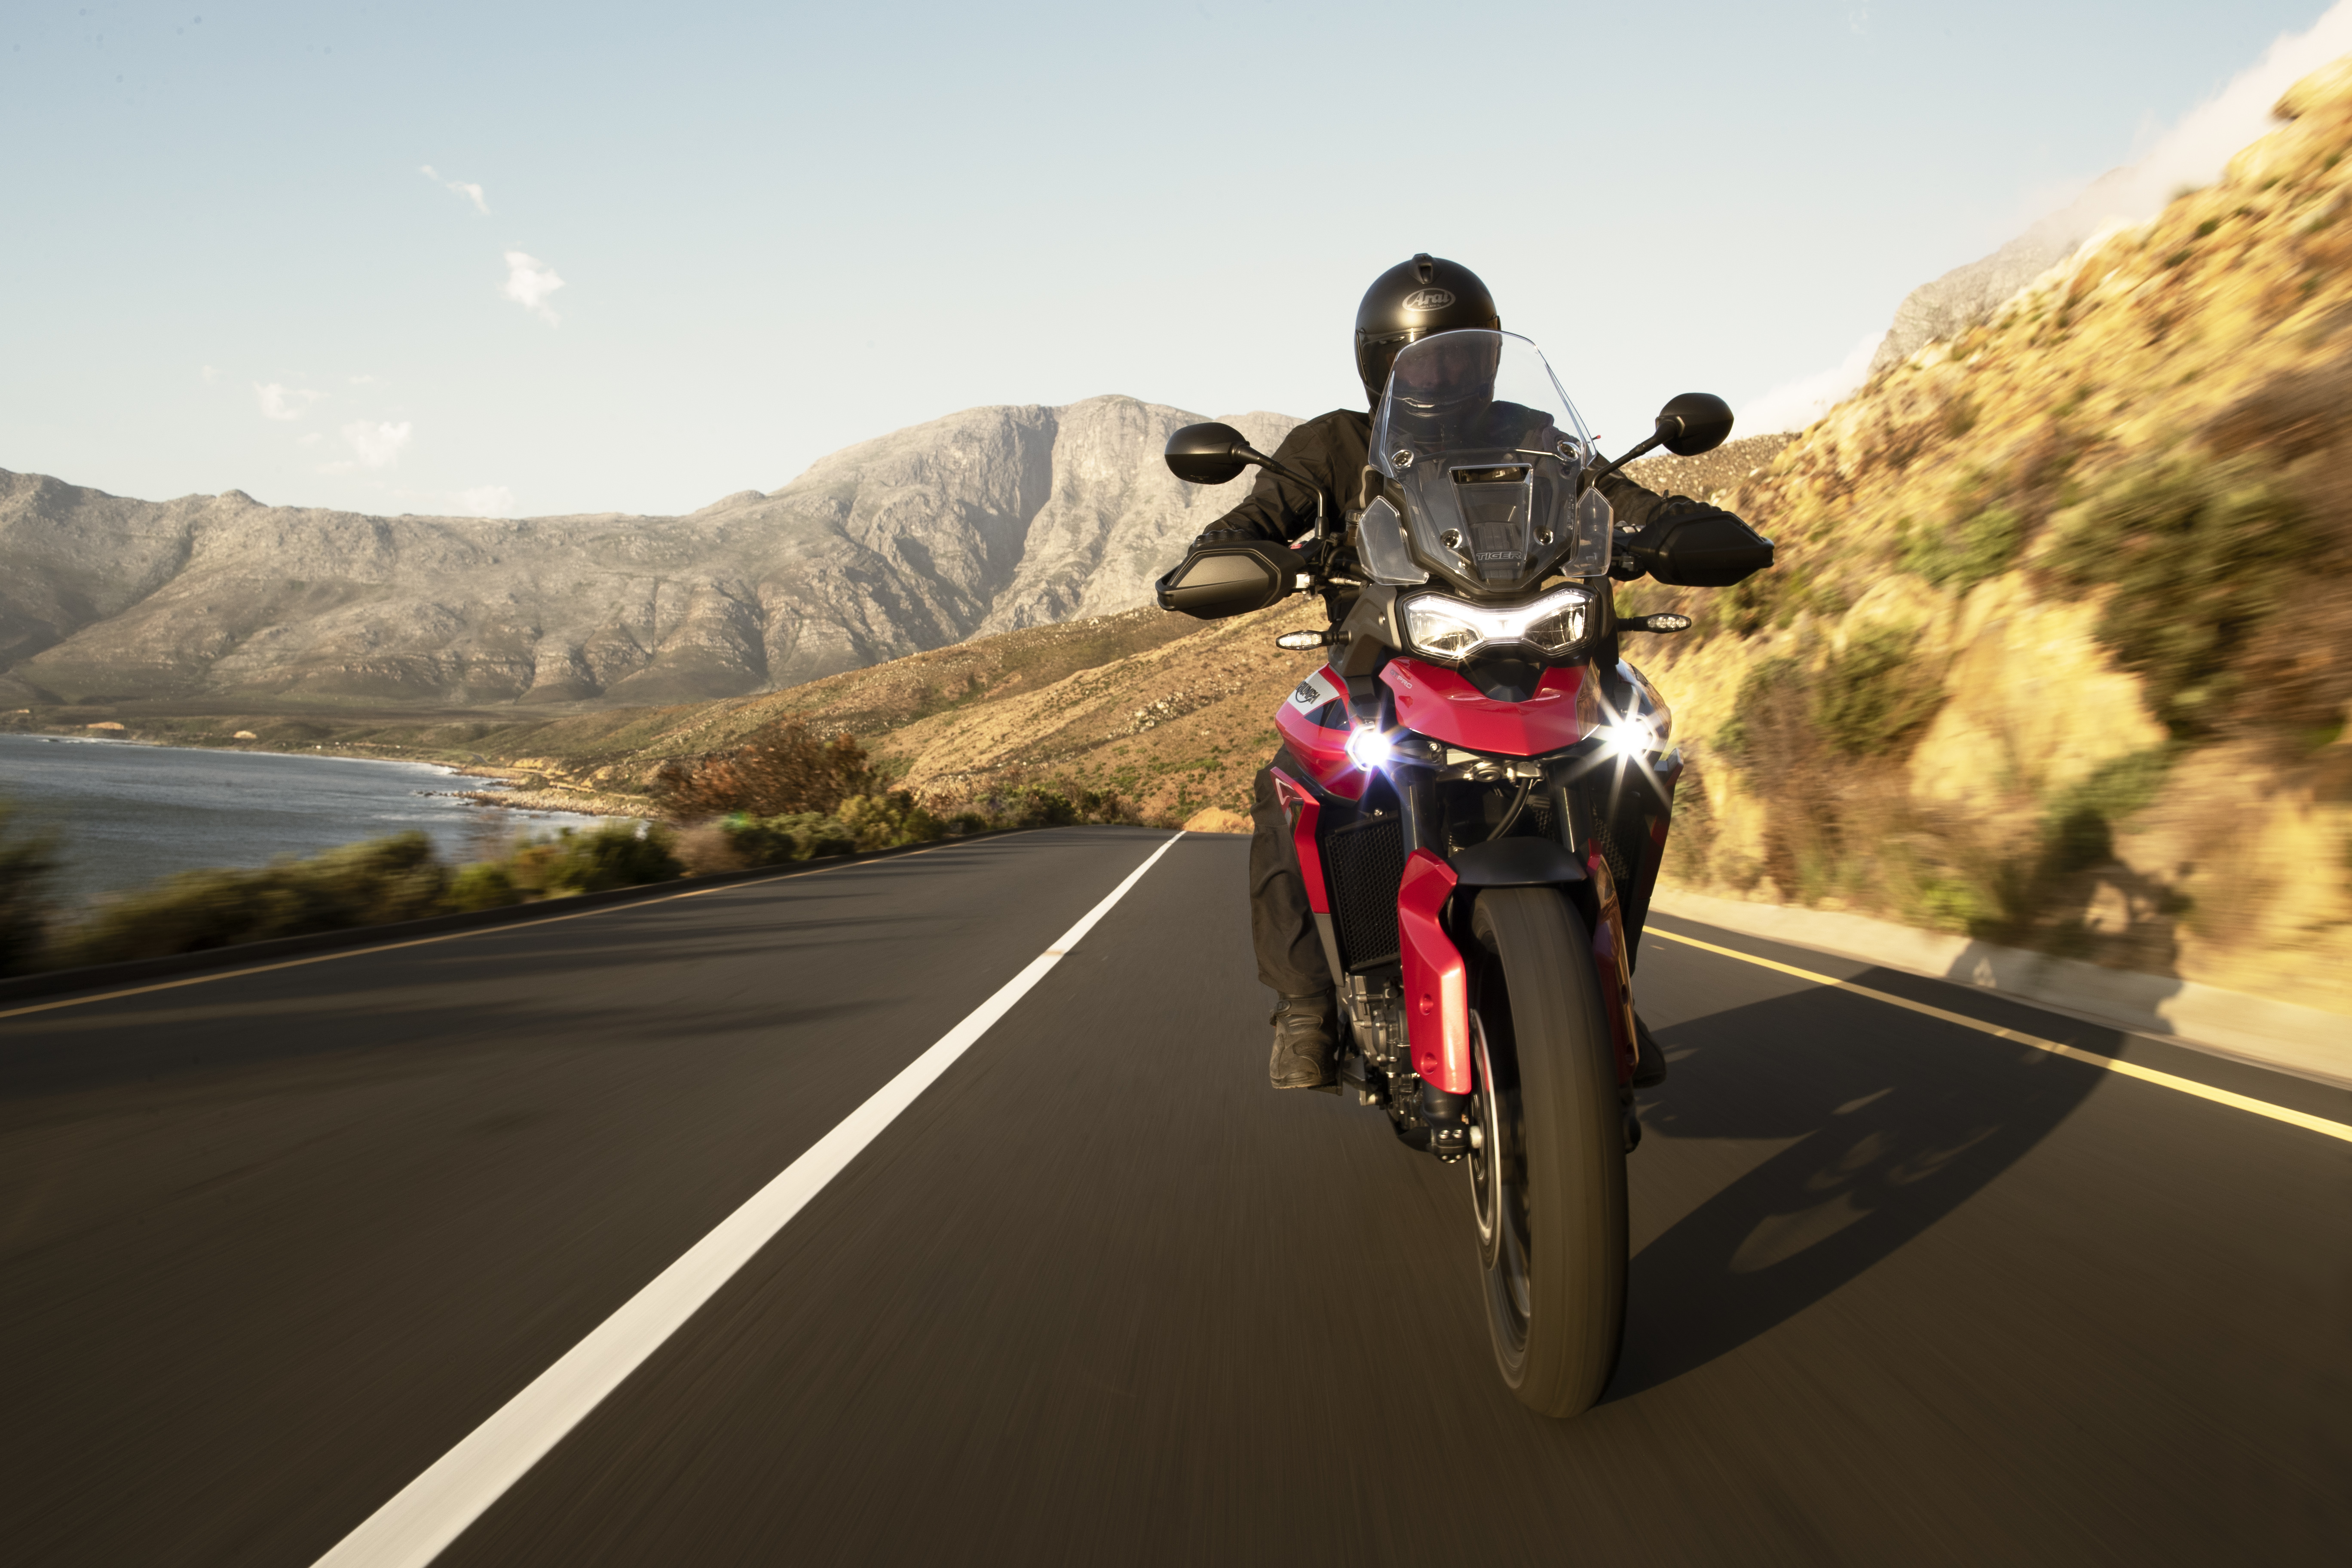 The Triumph boasts more torque than before